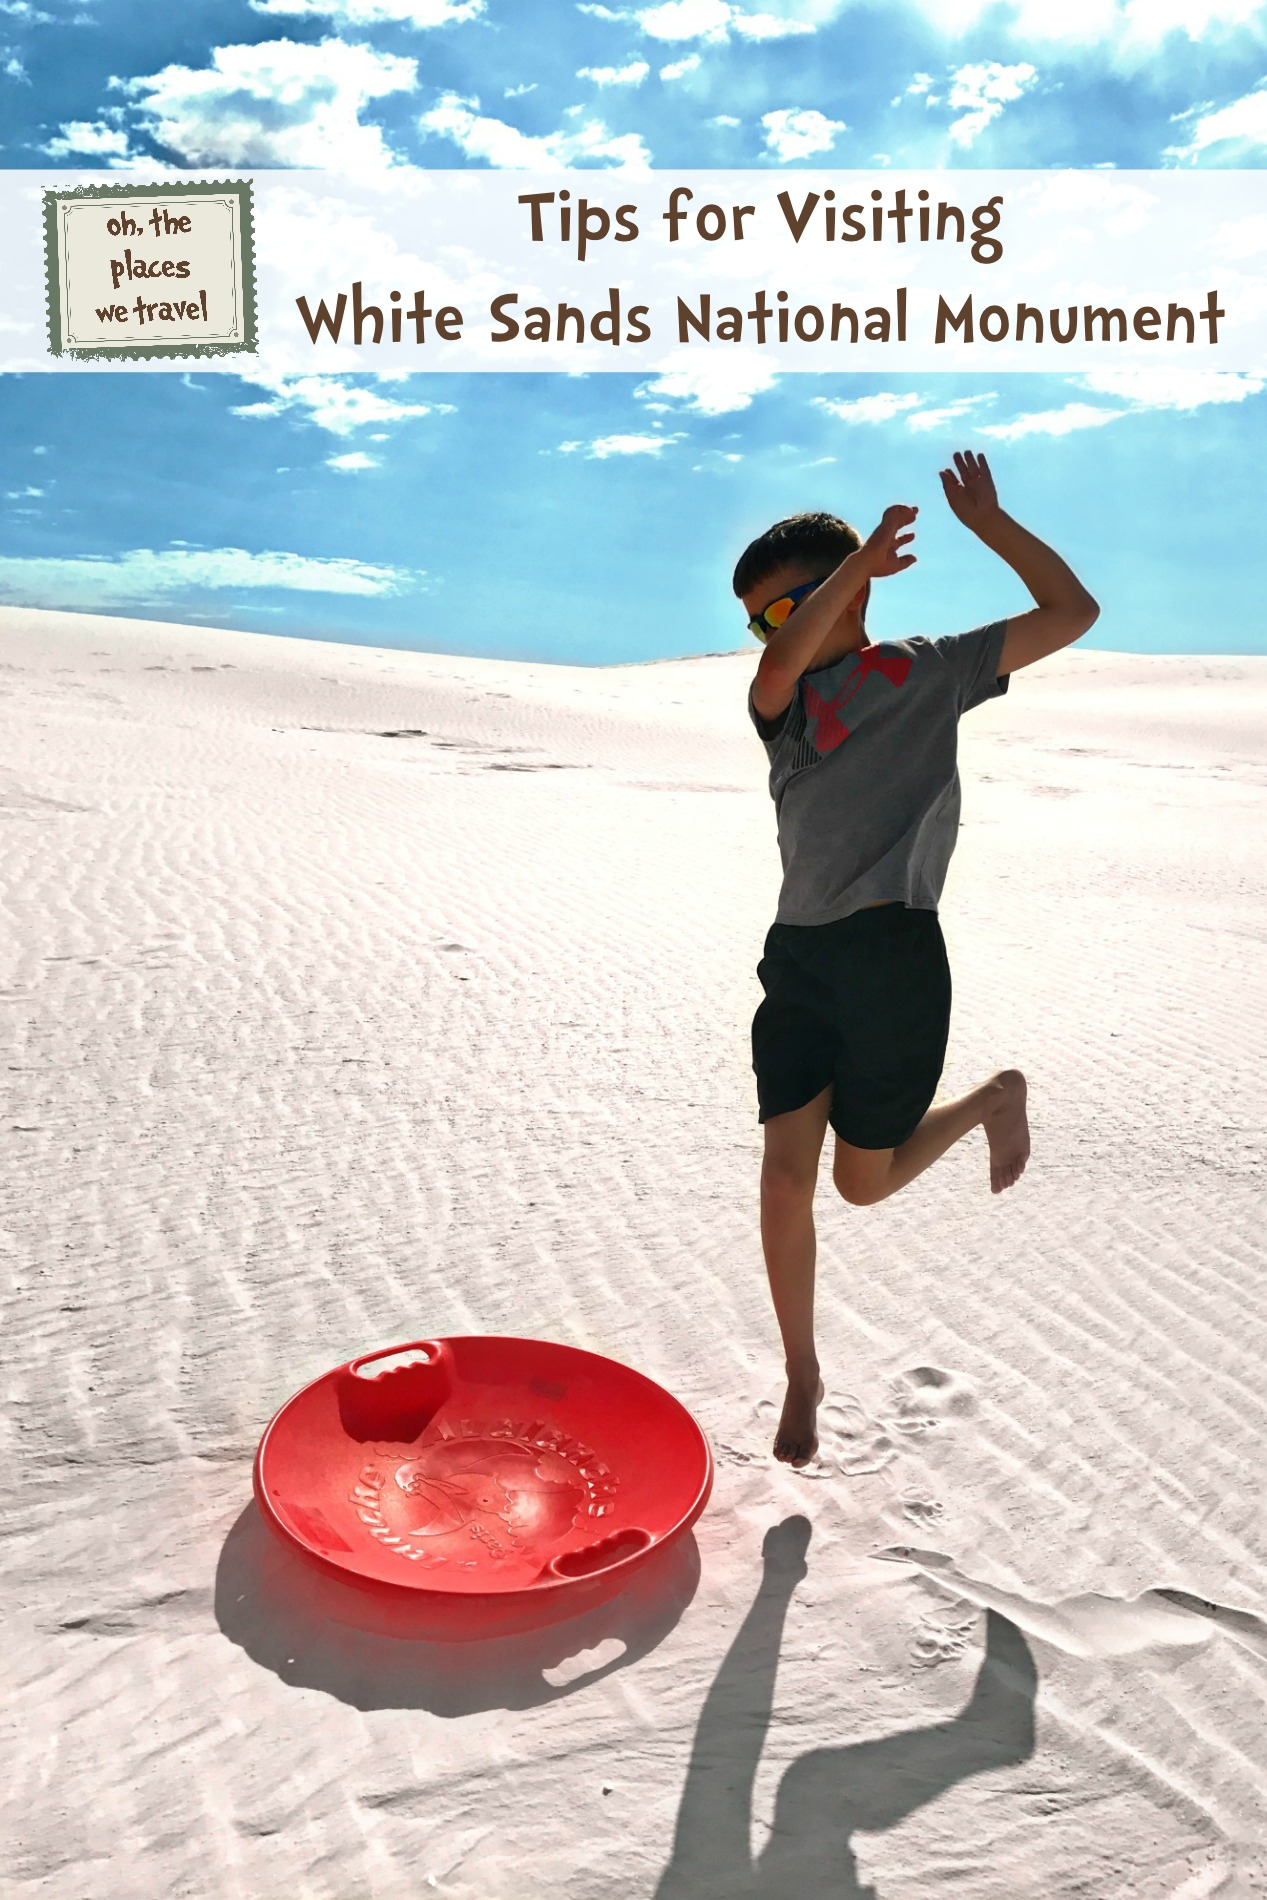 Tips for Visiting White Sands National Monument